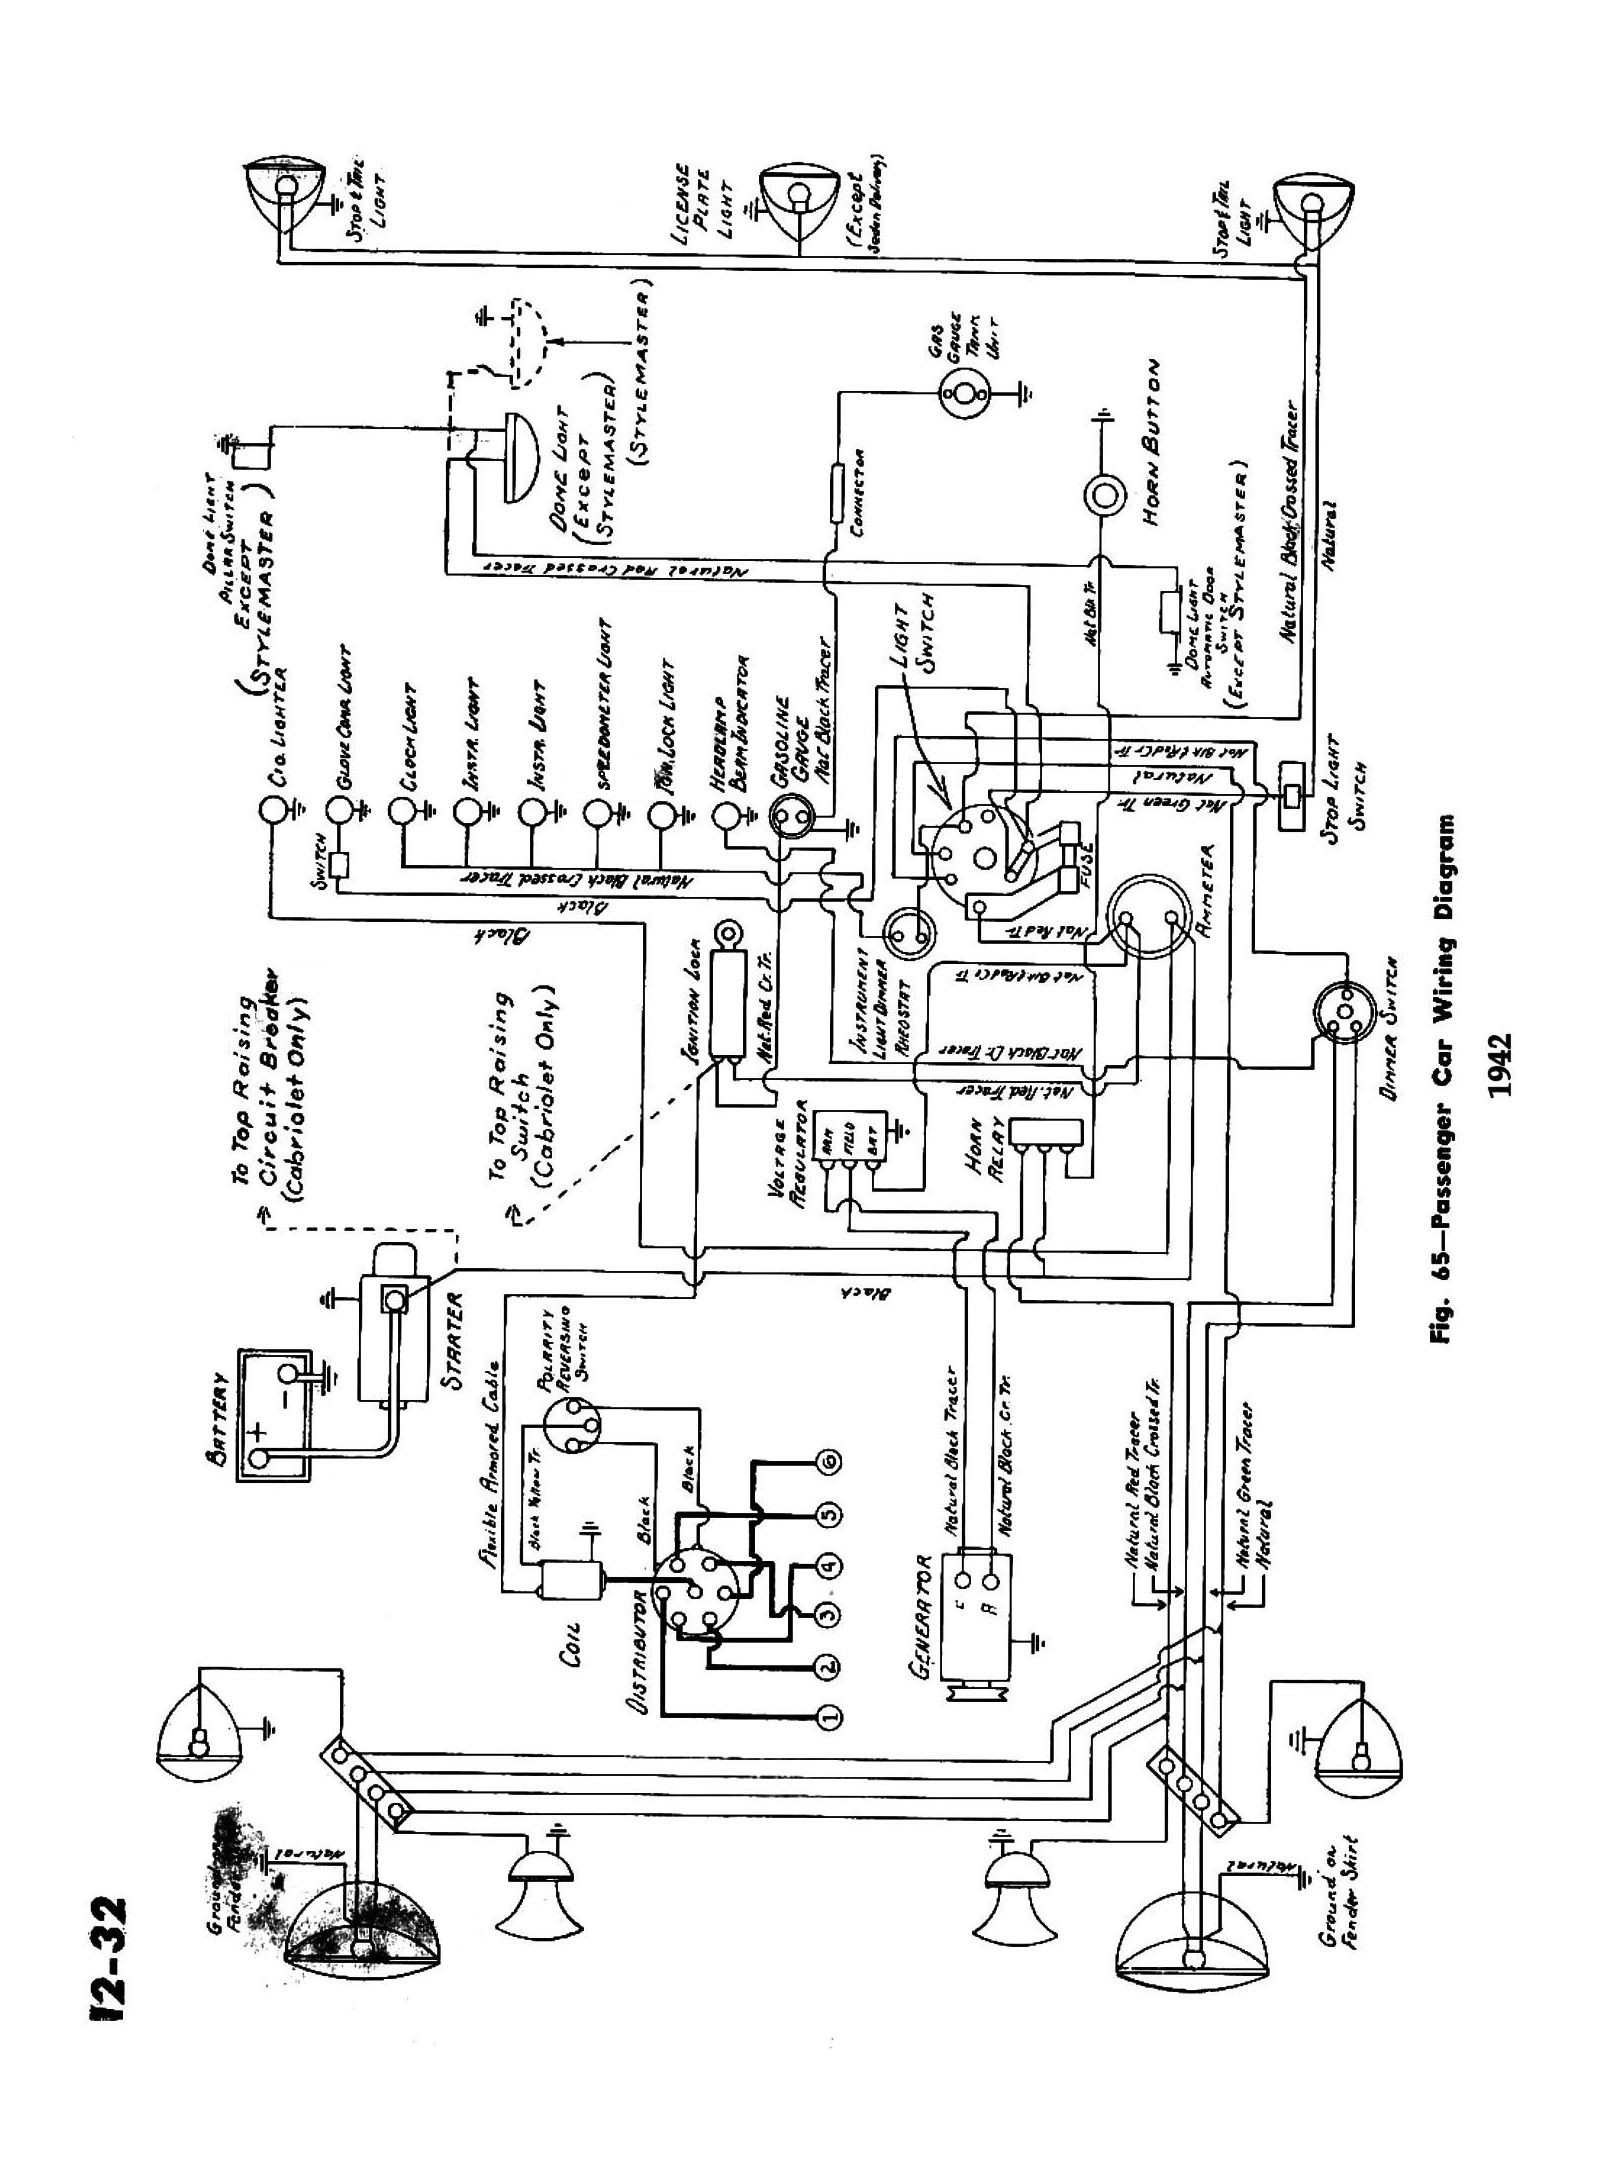 1948 Chevy Wiring Diagram Online 350 Alternator Truck Data